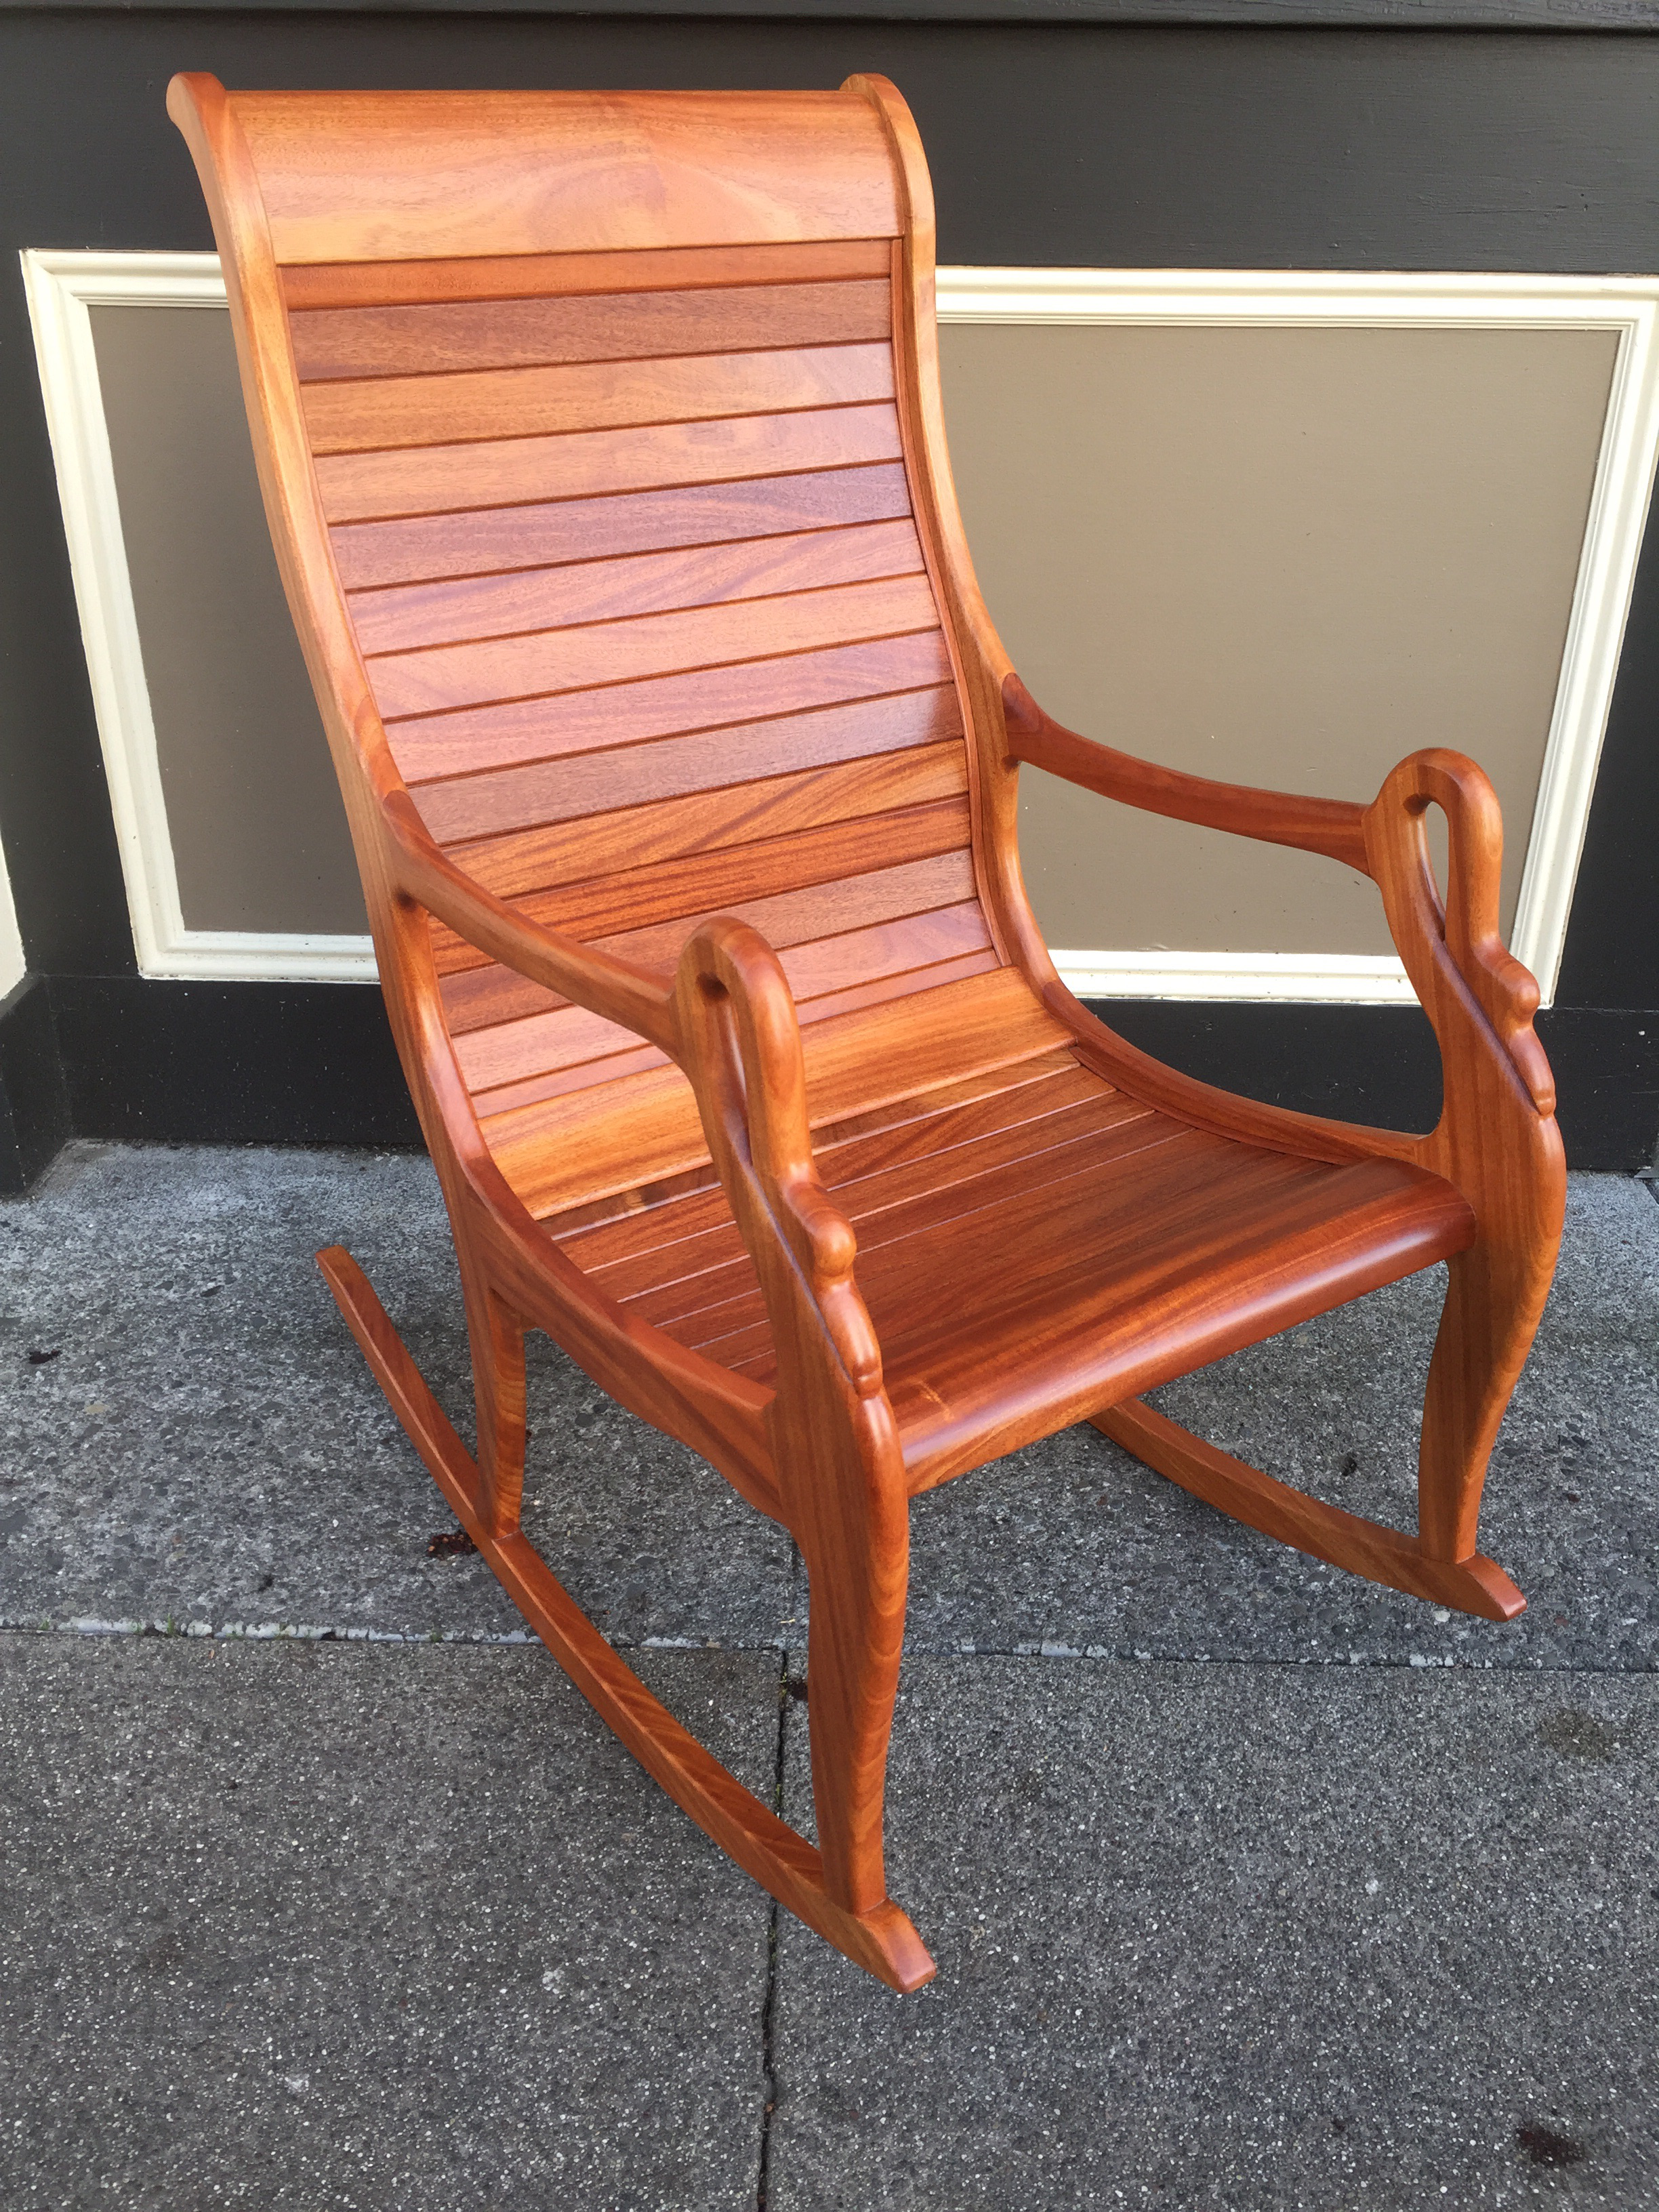 Contemporary Solid Cherry Wood Rocking Chair For Sale   Image 3 Of 11